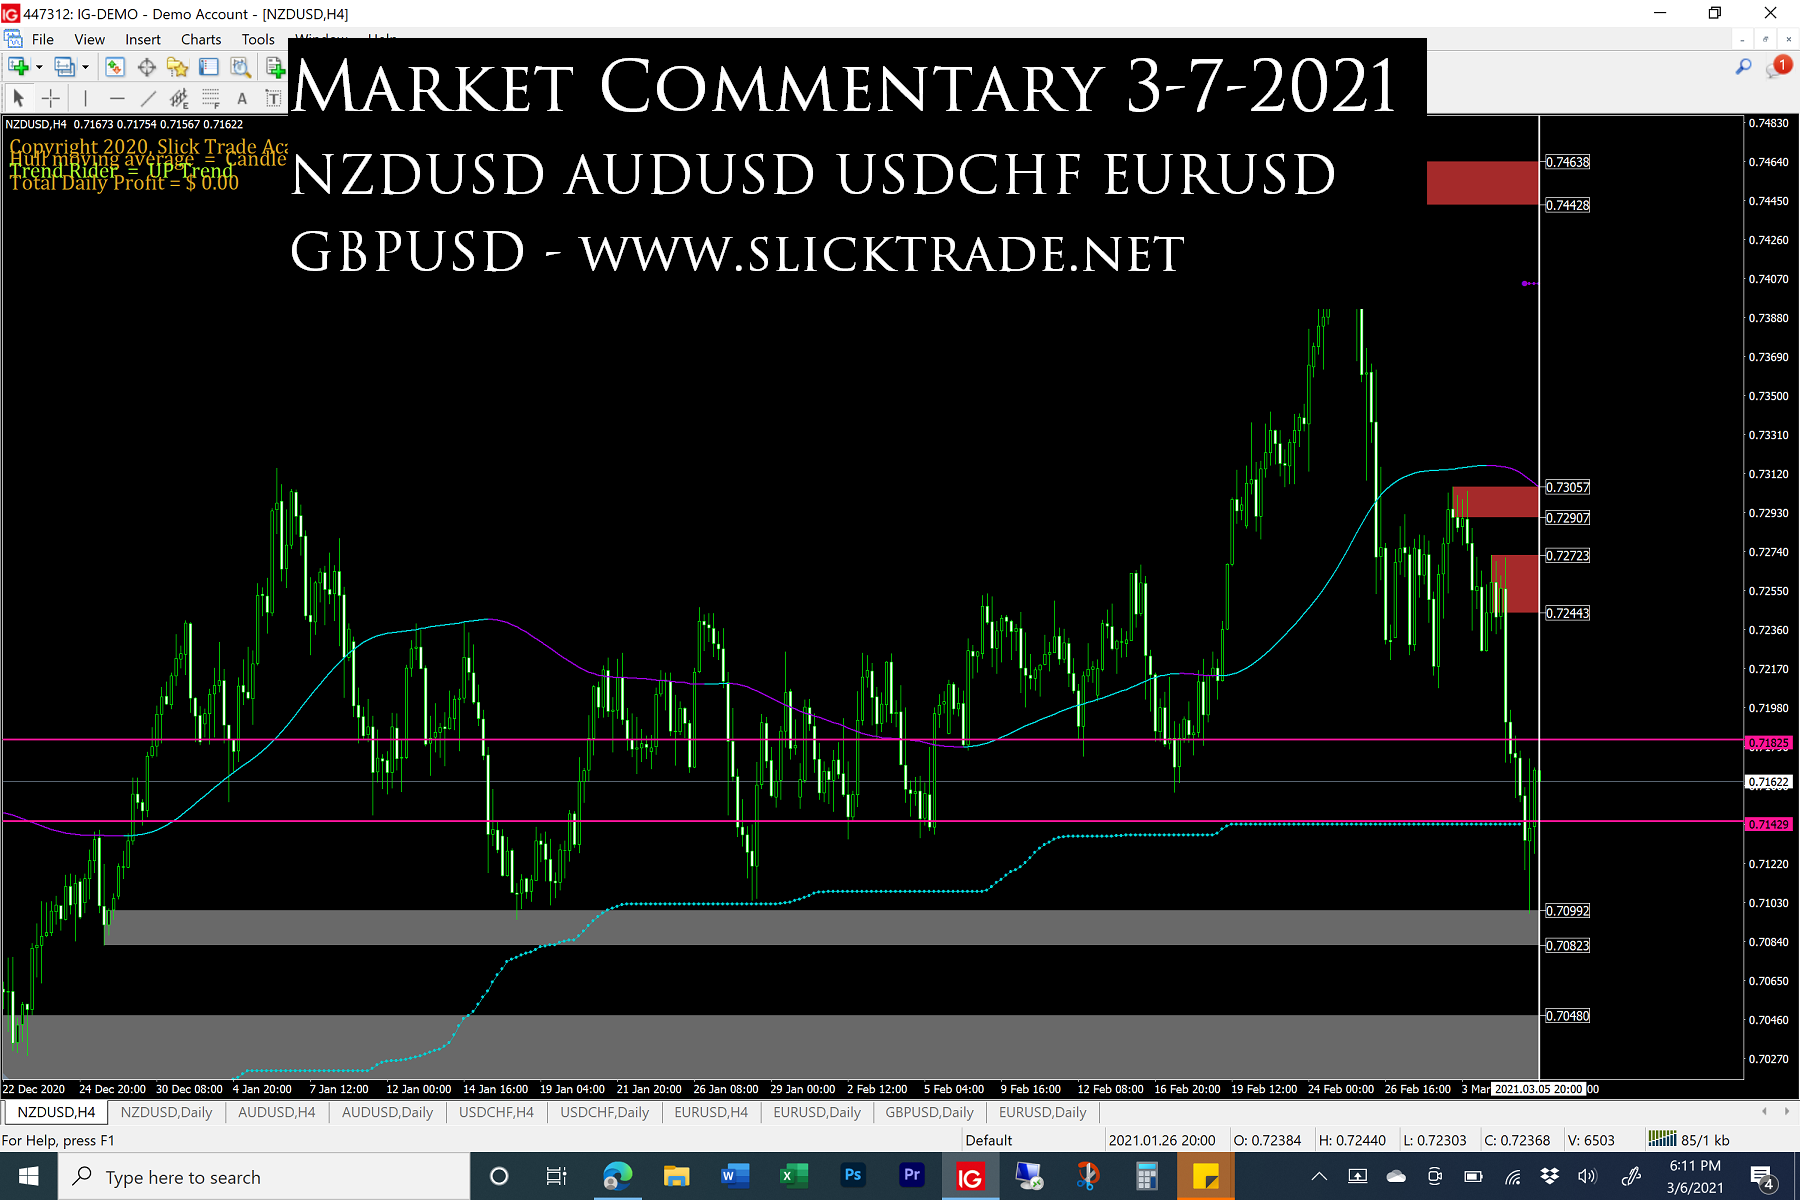 market commentary 3-7-2021